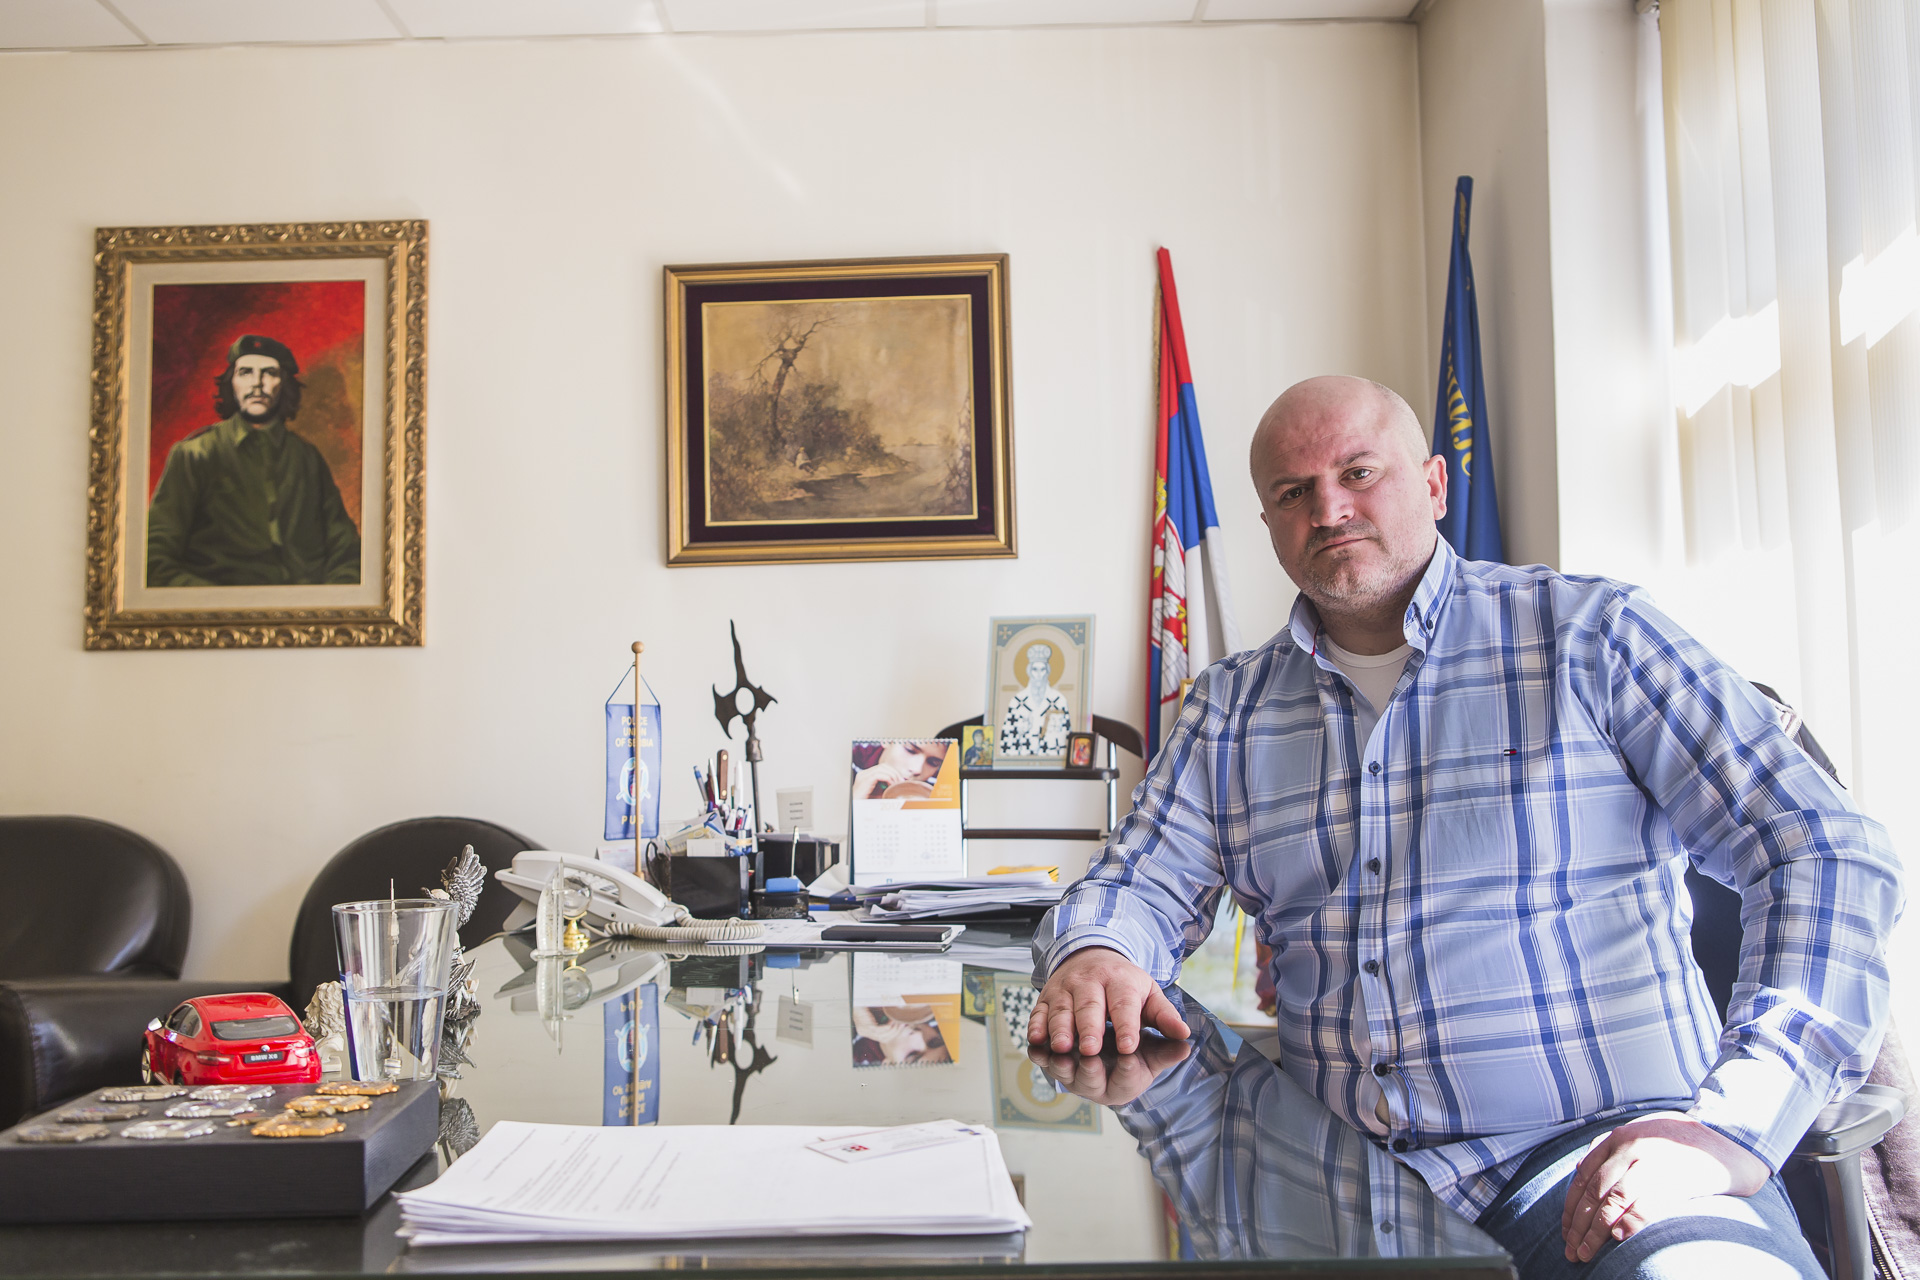 The president of the Police Union, that took part in the protests, in his office, besides the serbian flags, statues of historical heroes and ortodox icons, as well as the portrait of Che Guevara.